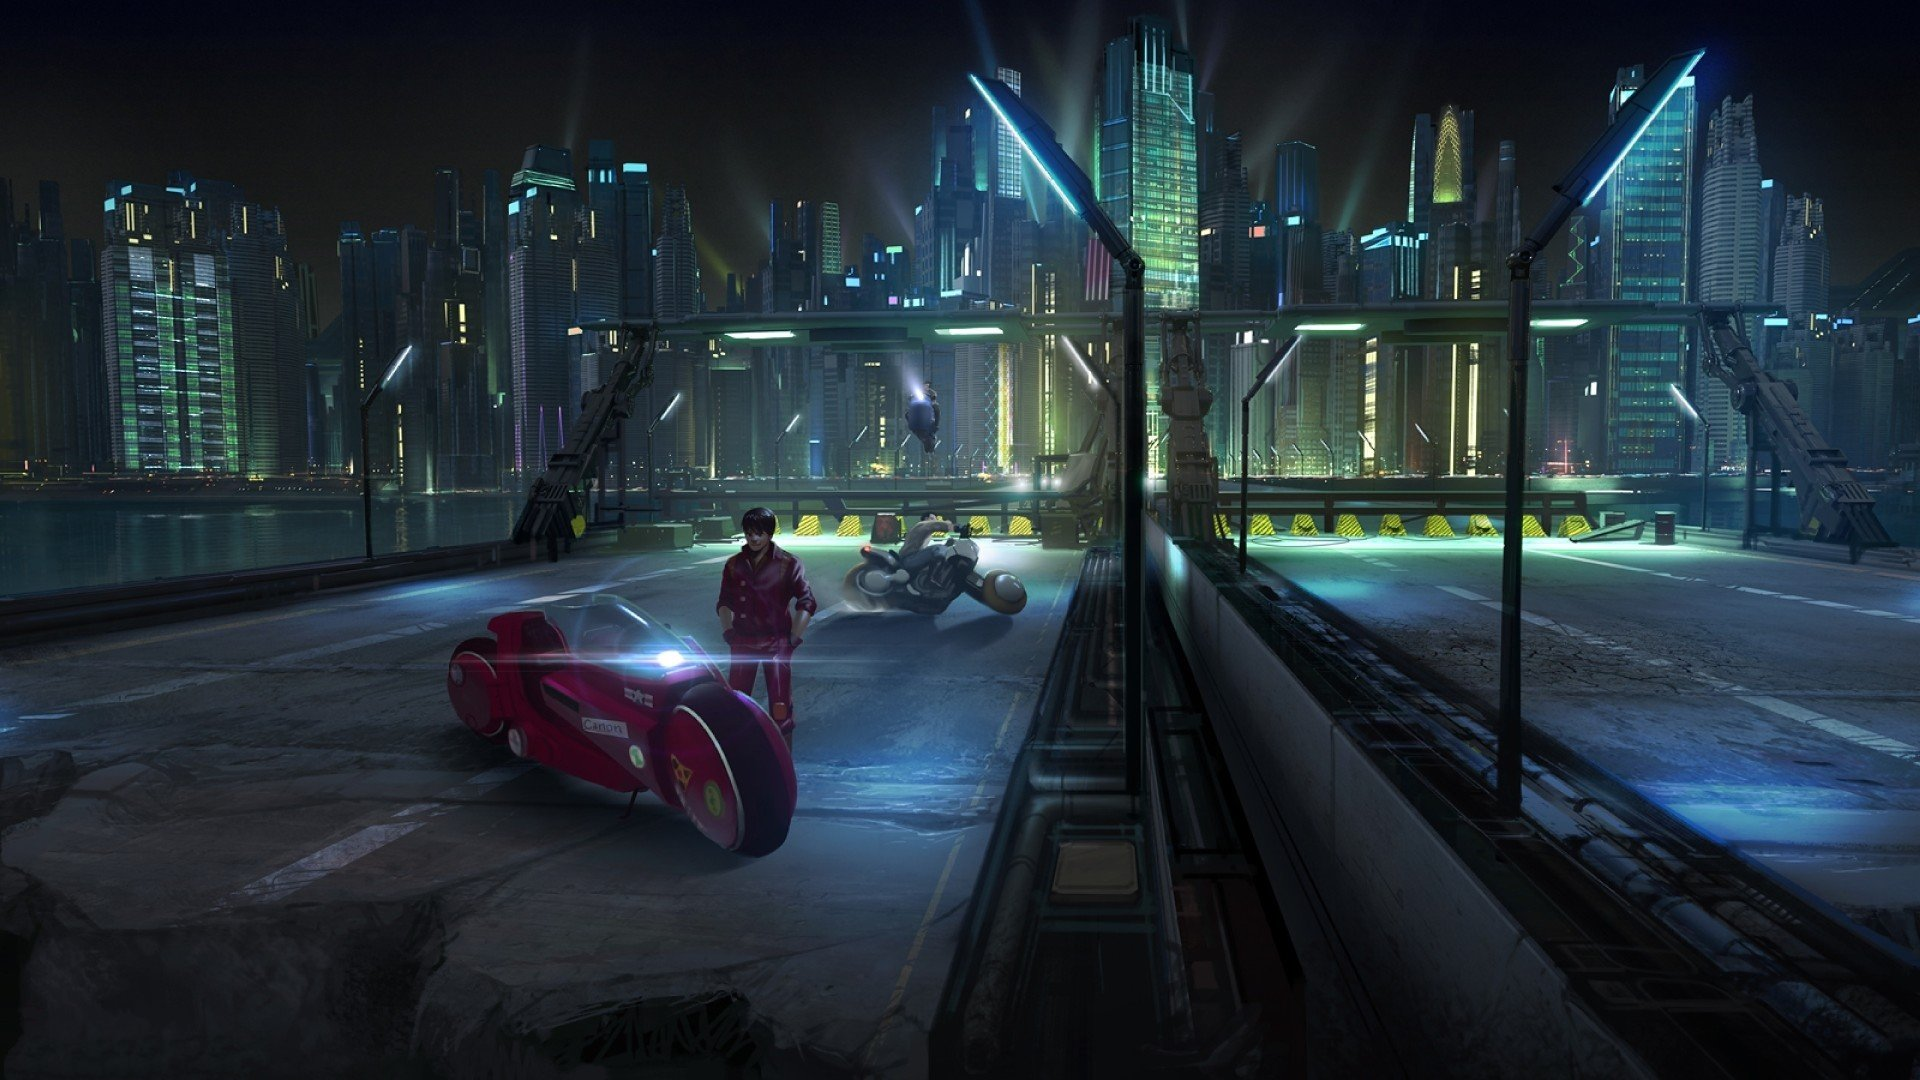 Download full hd 1080p Akira PC background ID:366010 for free